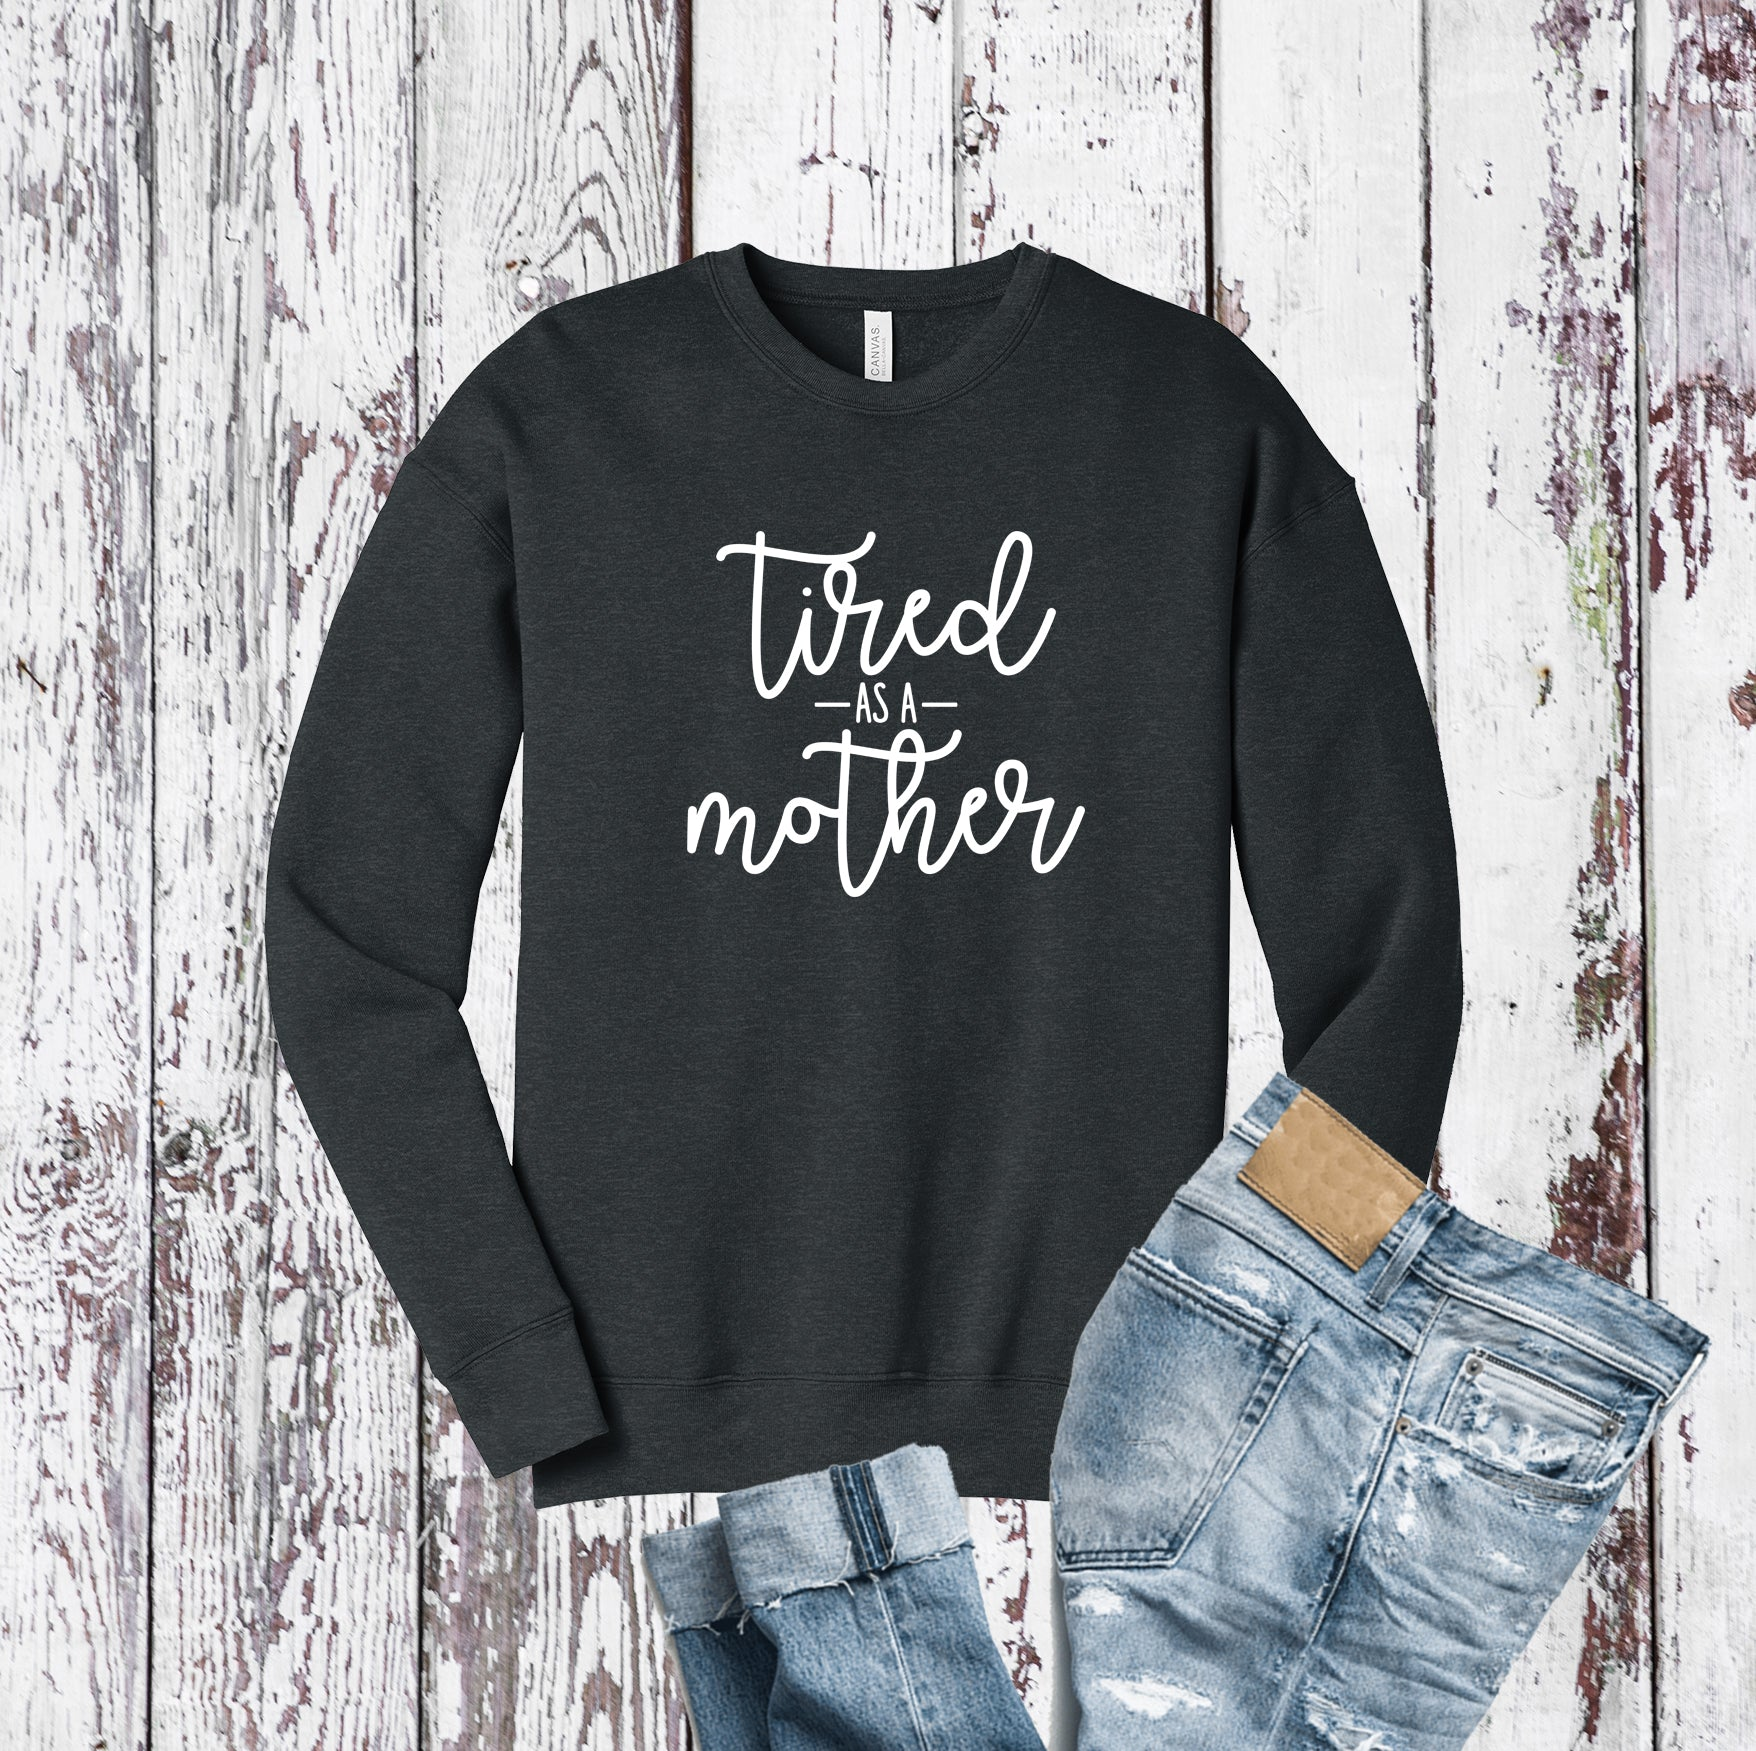 Tired as a Mother Crew Sweatshirt